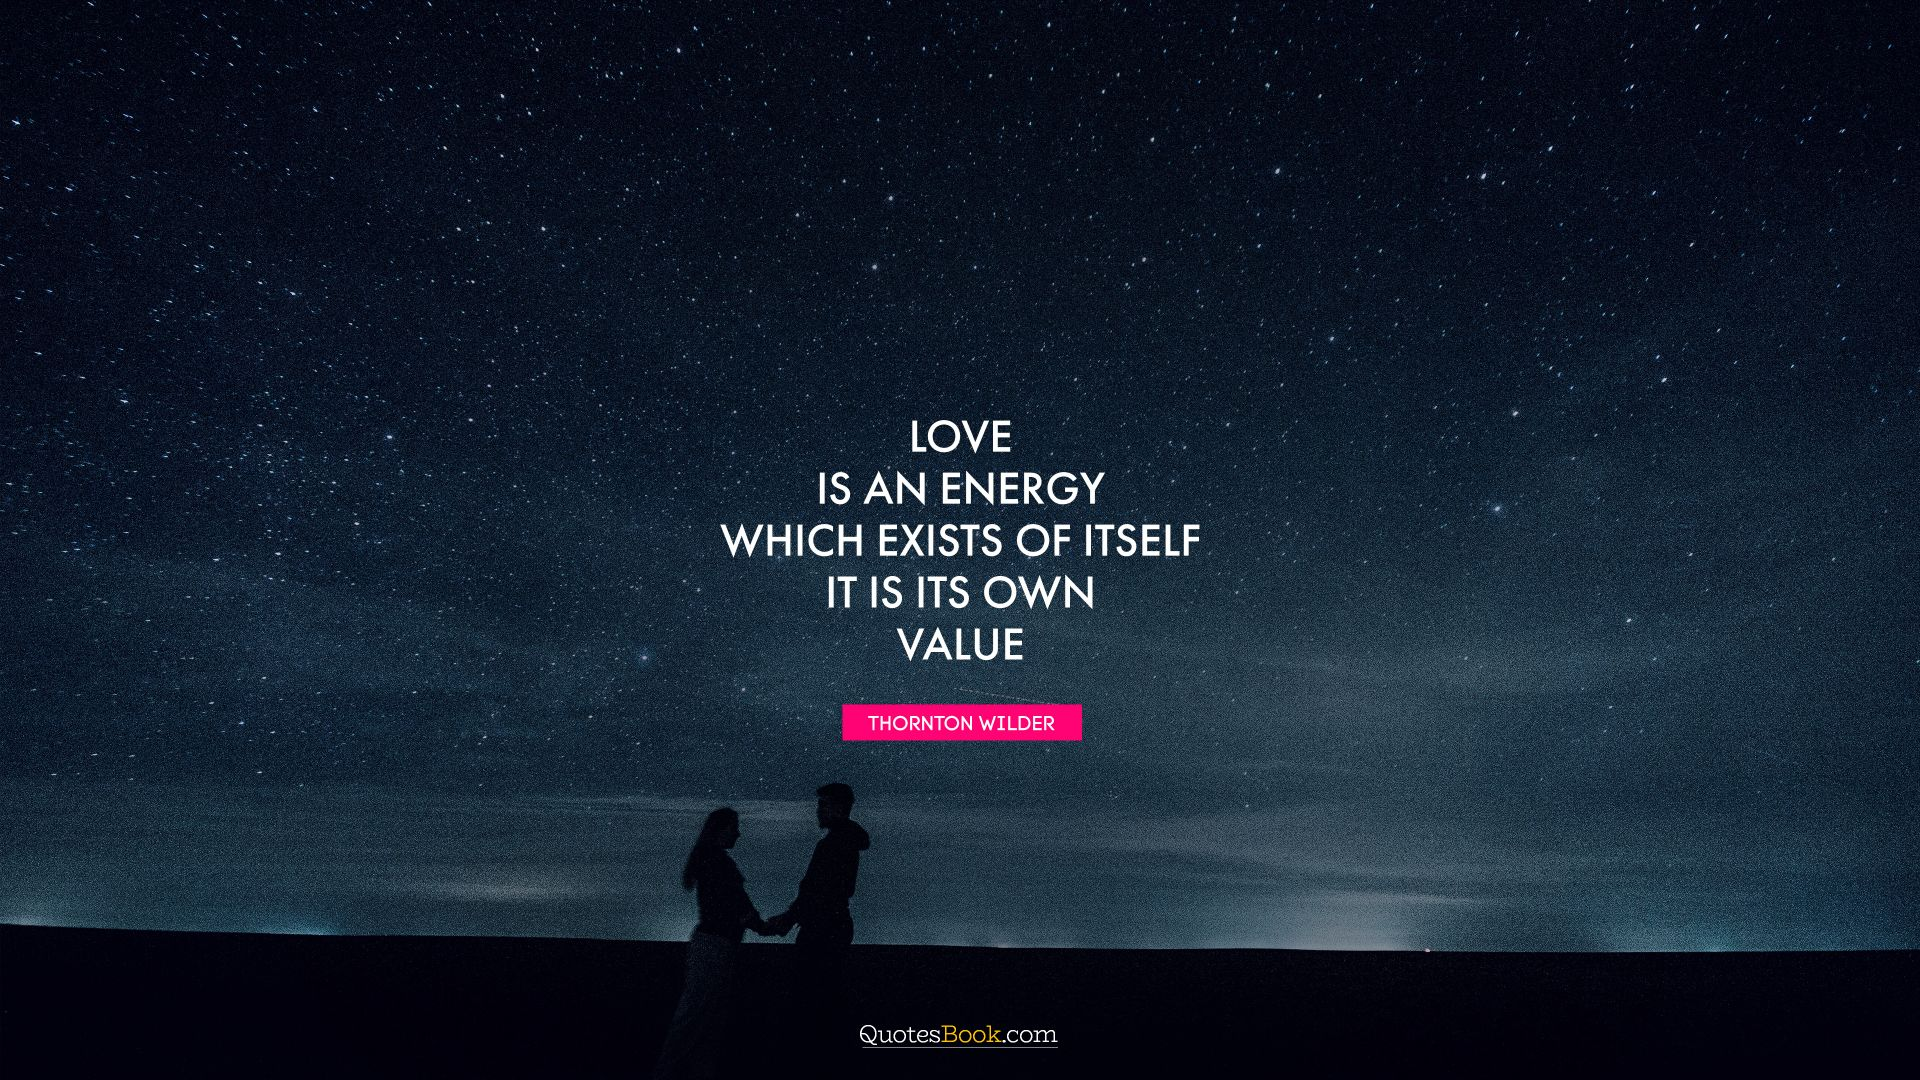 Love is an energy which exists of itself. It is its own value. - Quote by Thornton Wilder